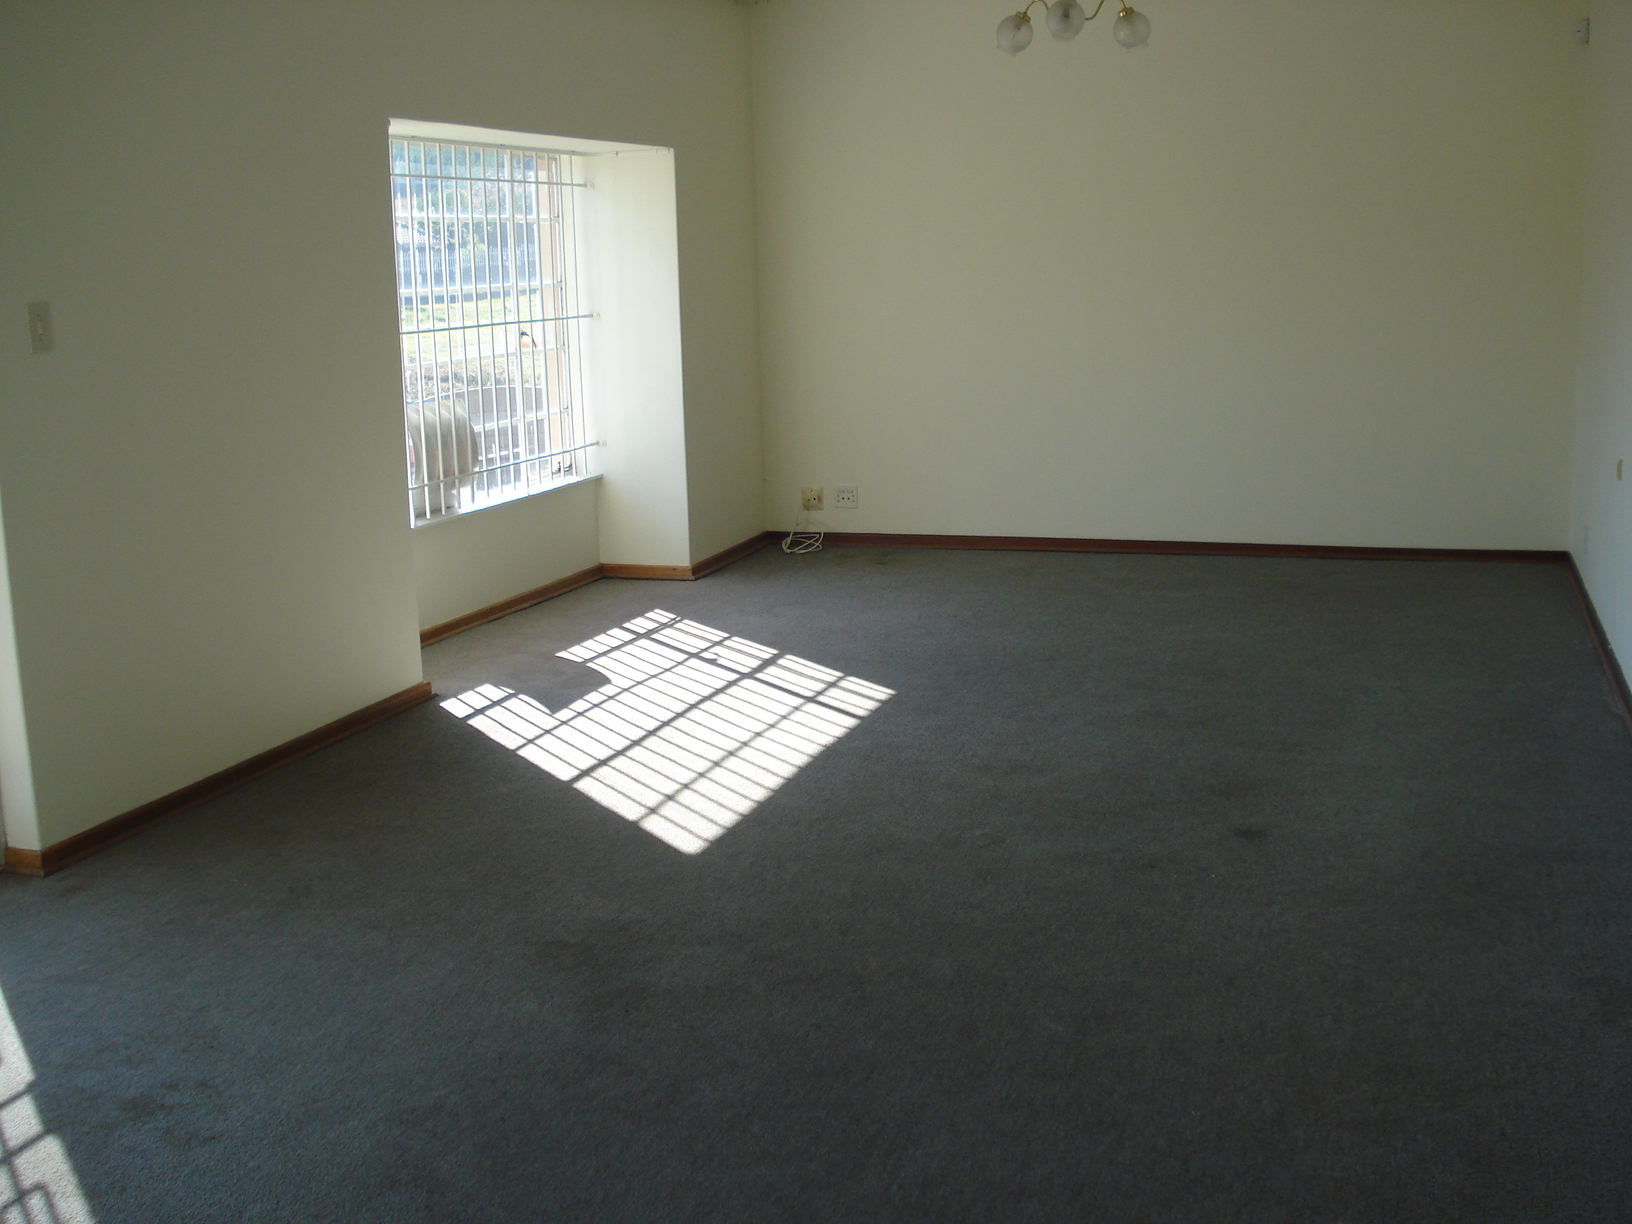 3 Bedroom Townhouse for sale in Glenvista ENT0029734 : photo#8